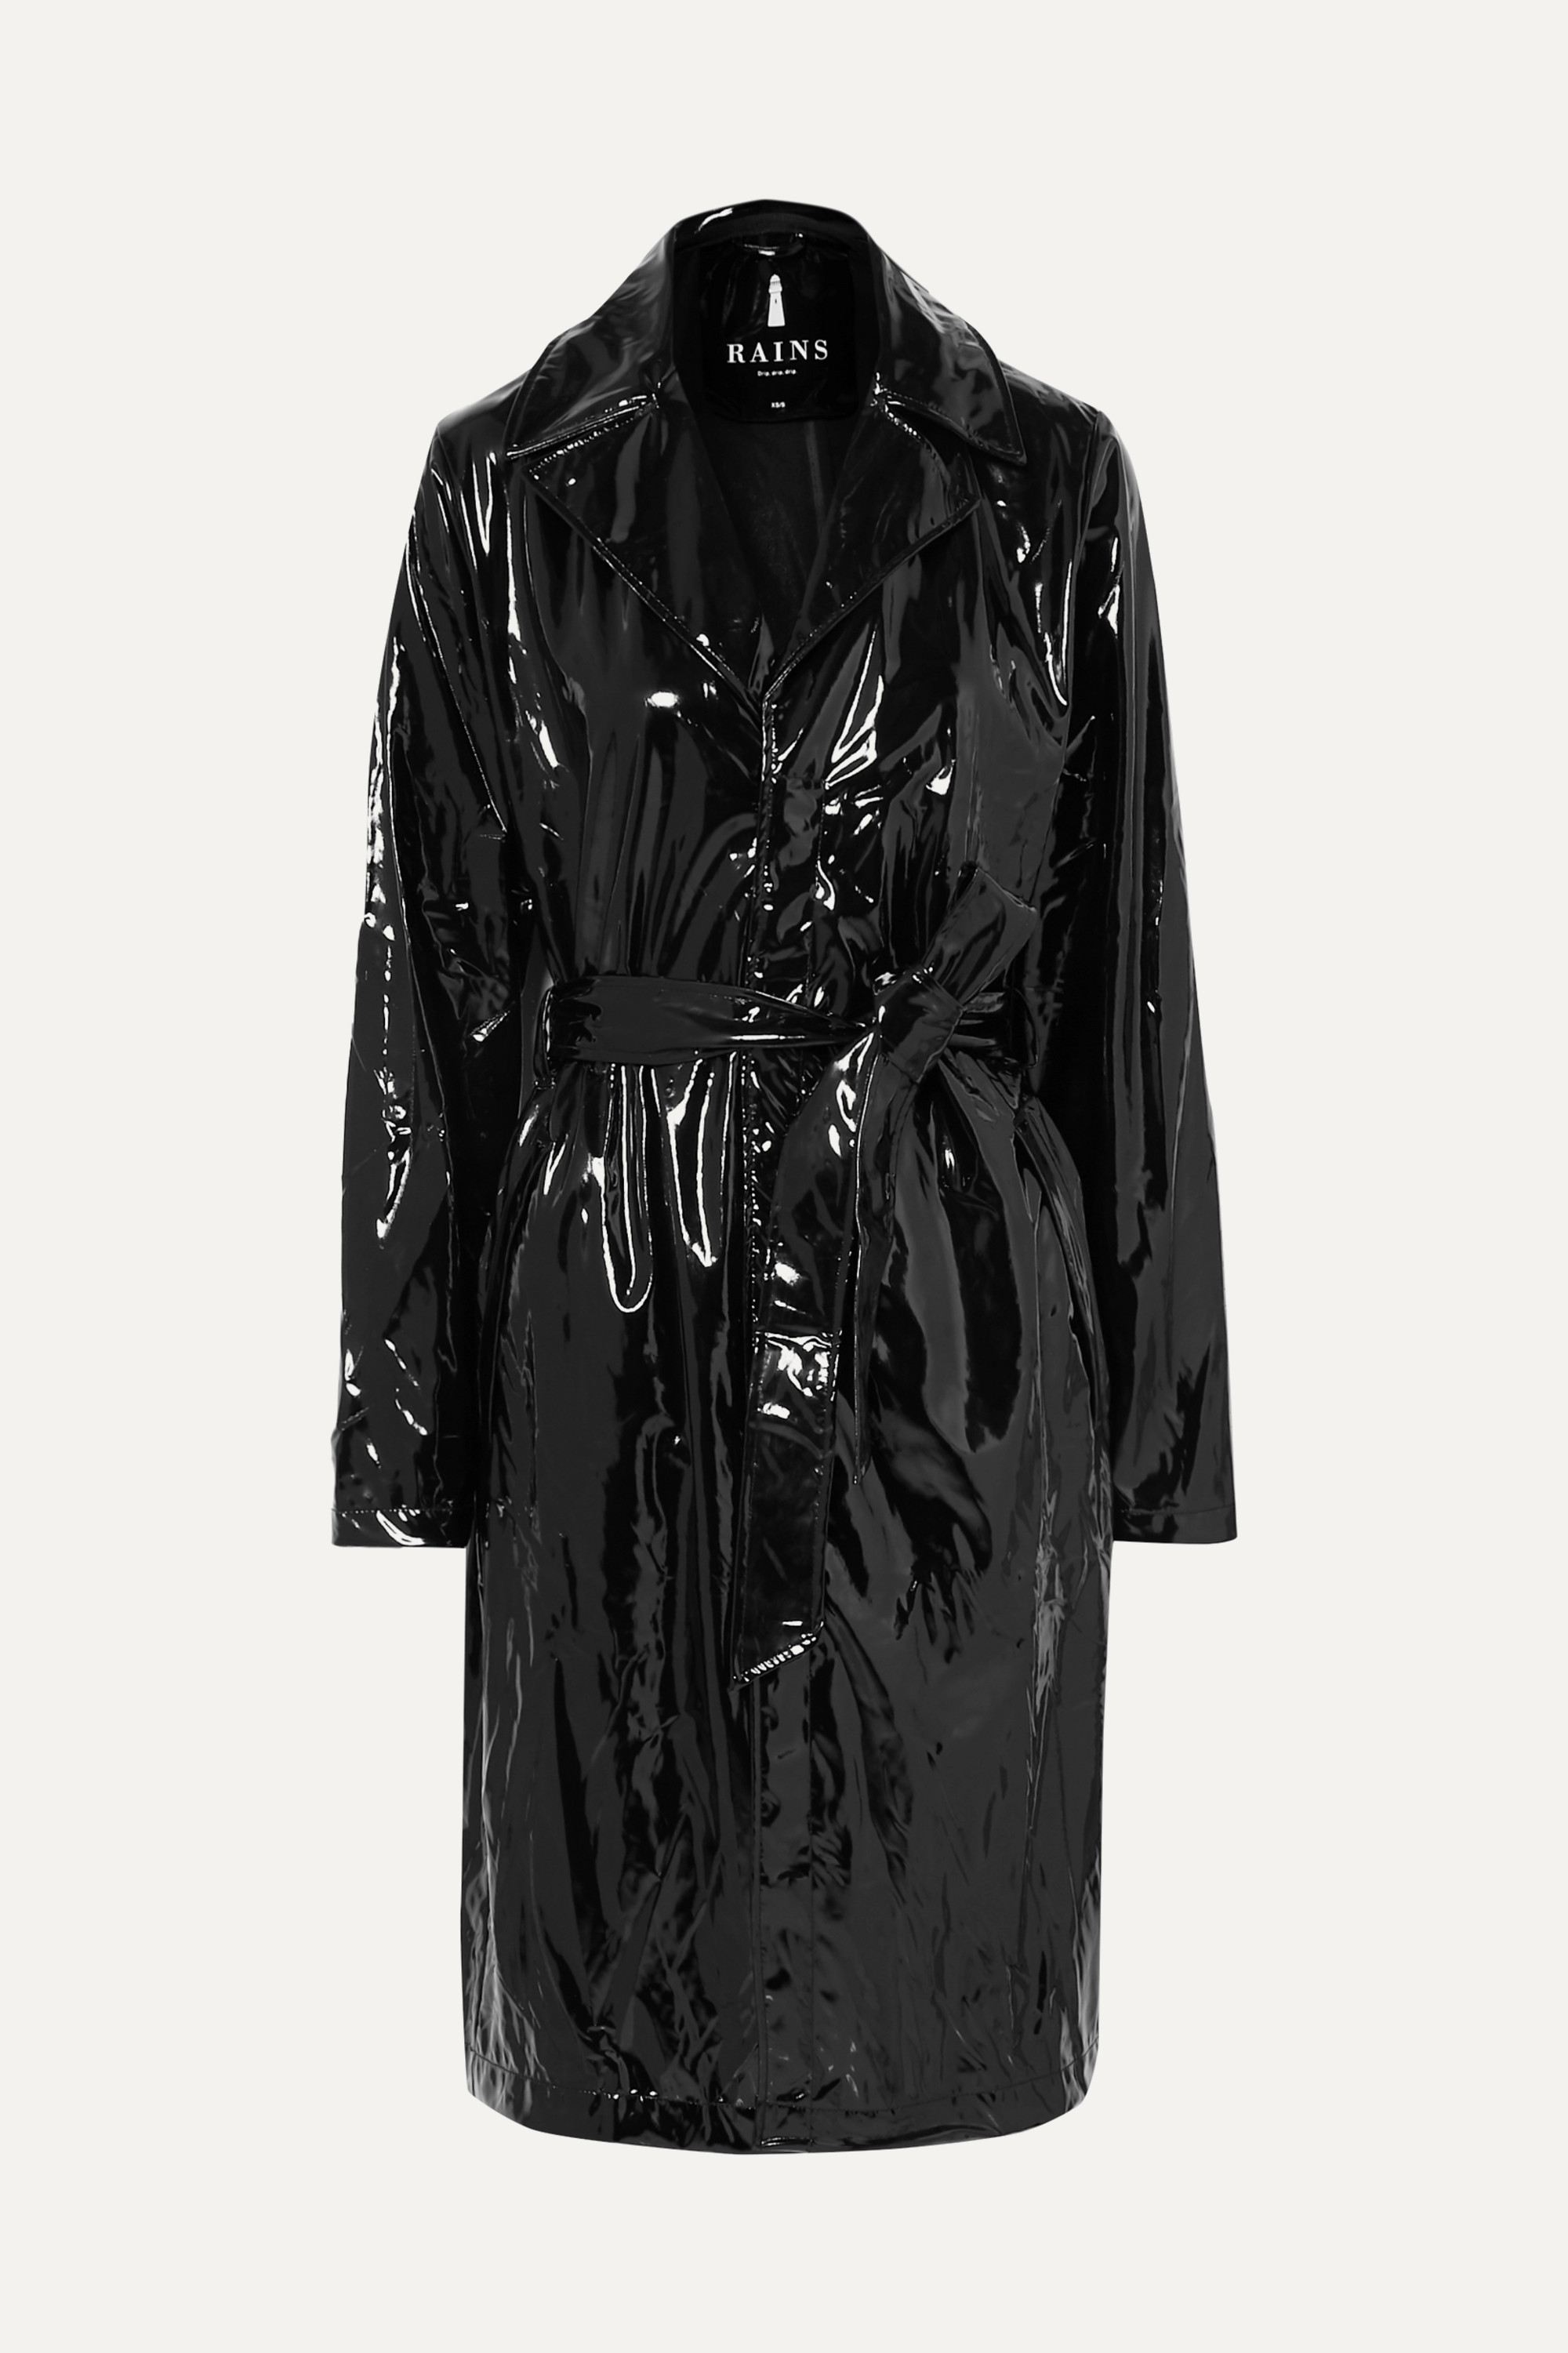 Rains Glossed-PU trench coat